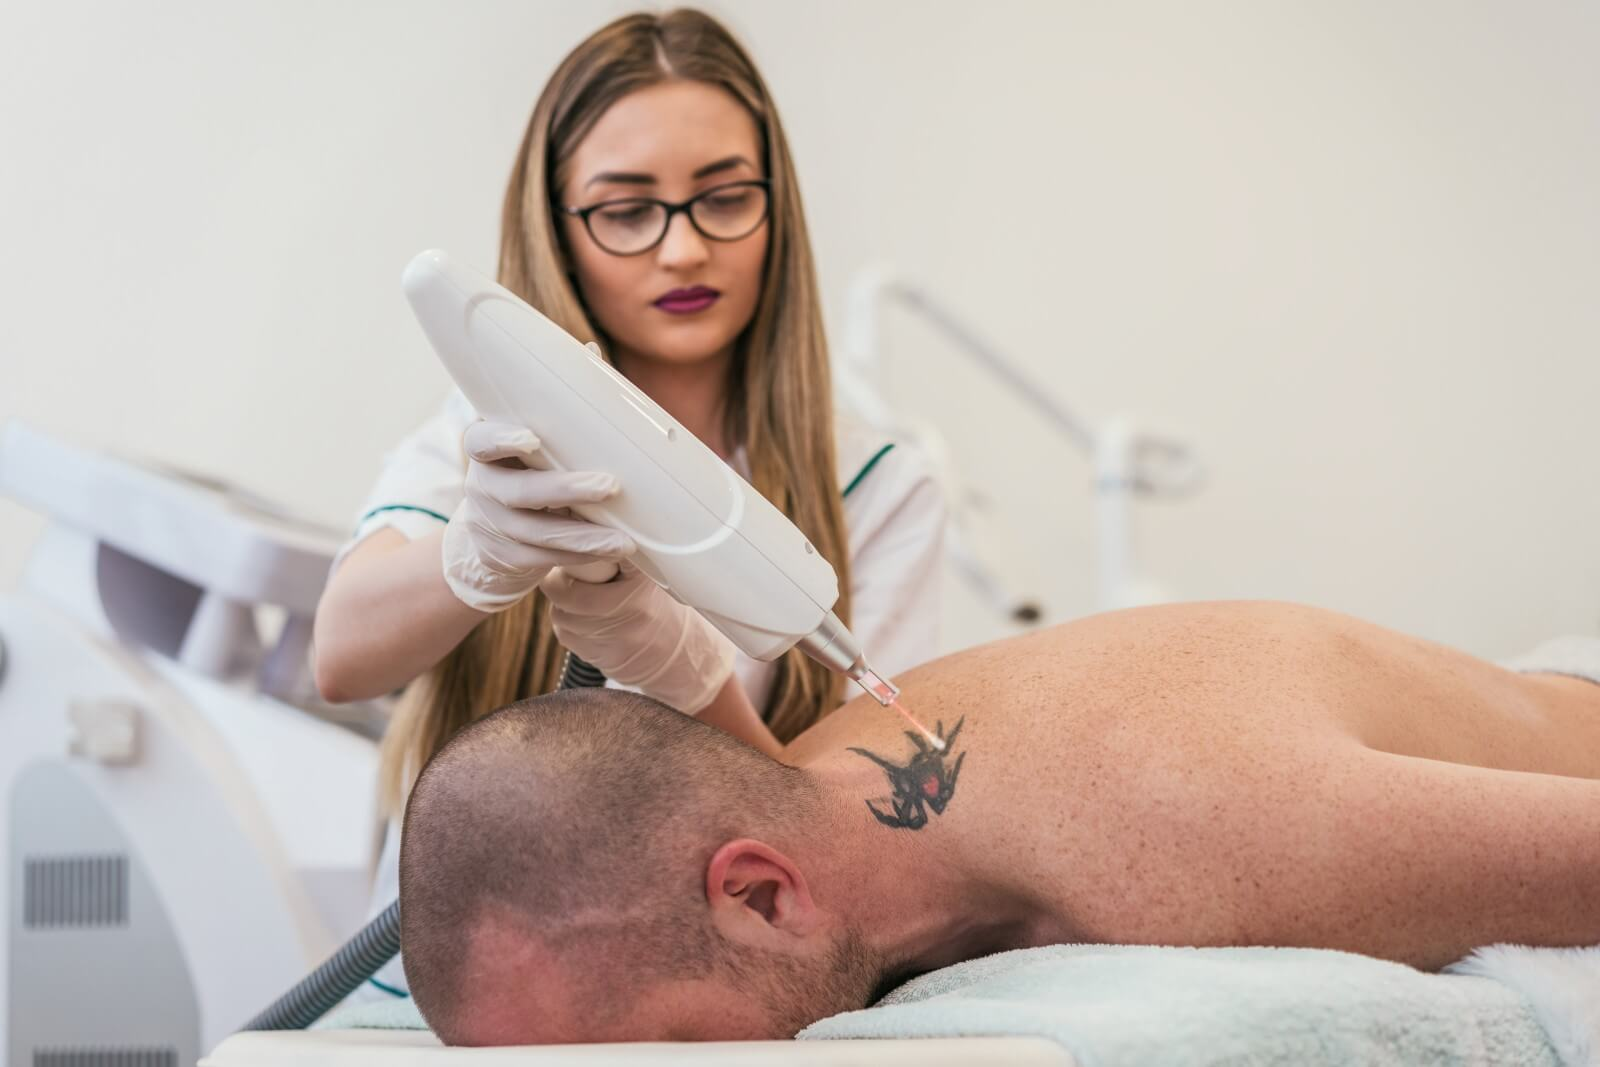 5 Promotion Ideas to Help Your Tattoo Removal Business Grow